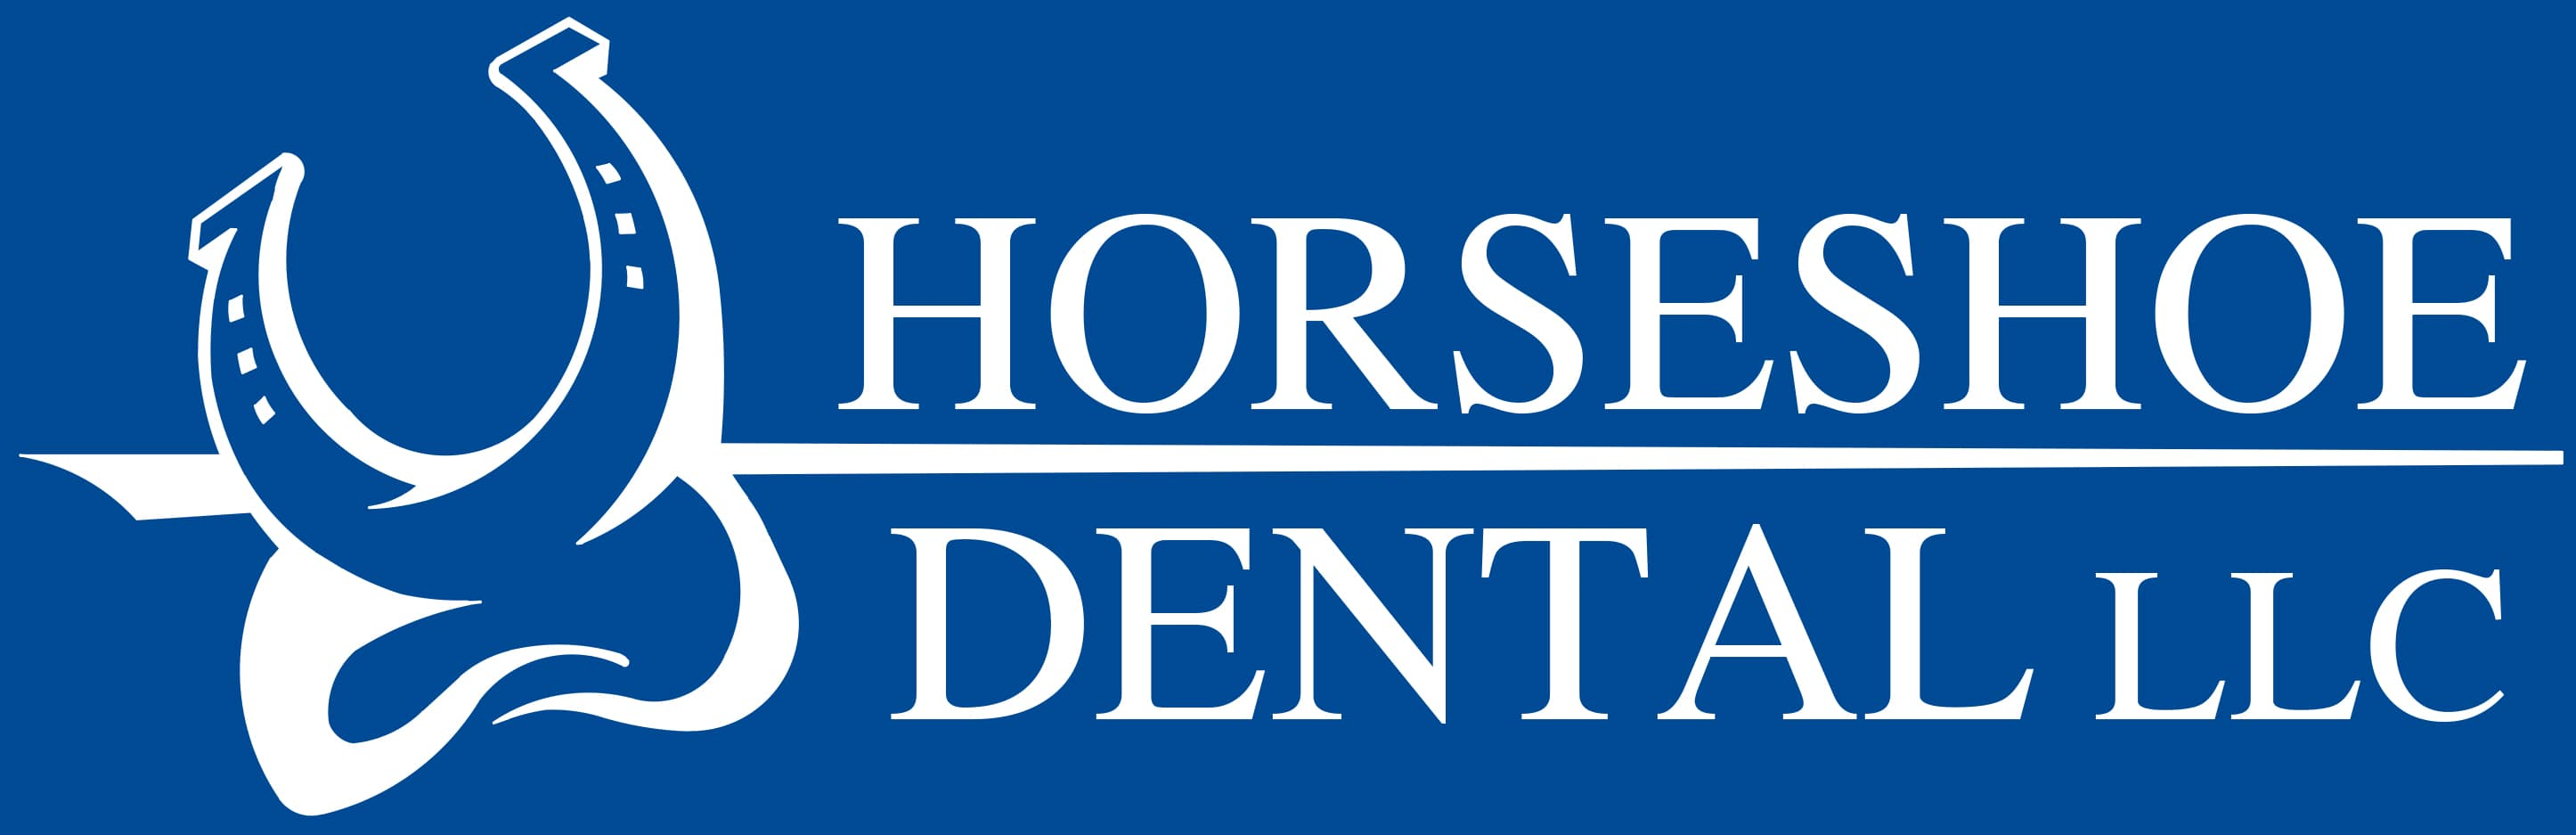 Horseshoe Dental LLC